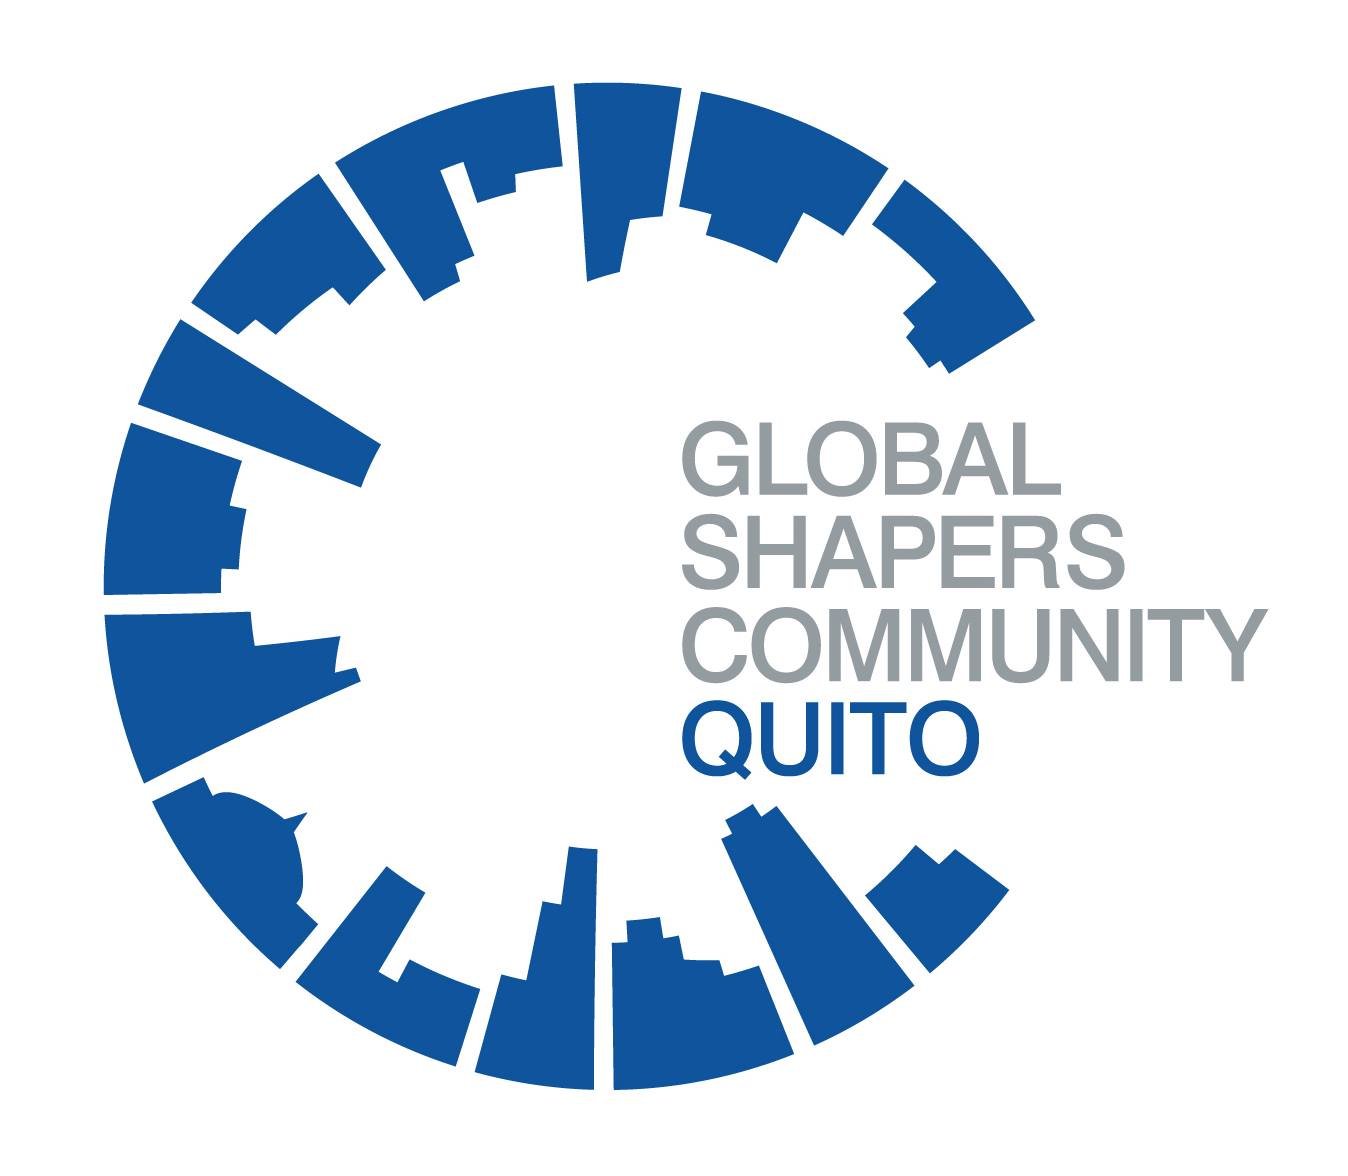 Logo Global Shapers Community Quito